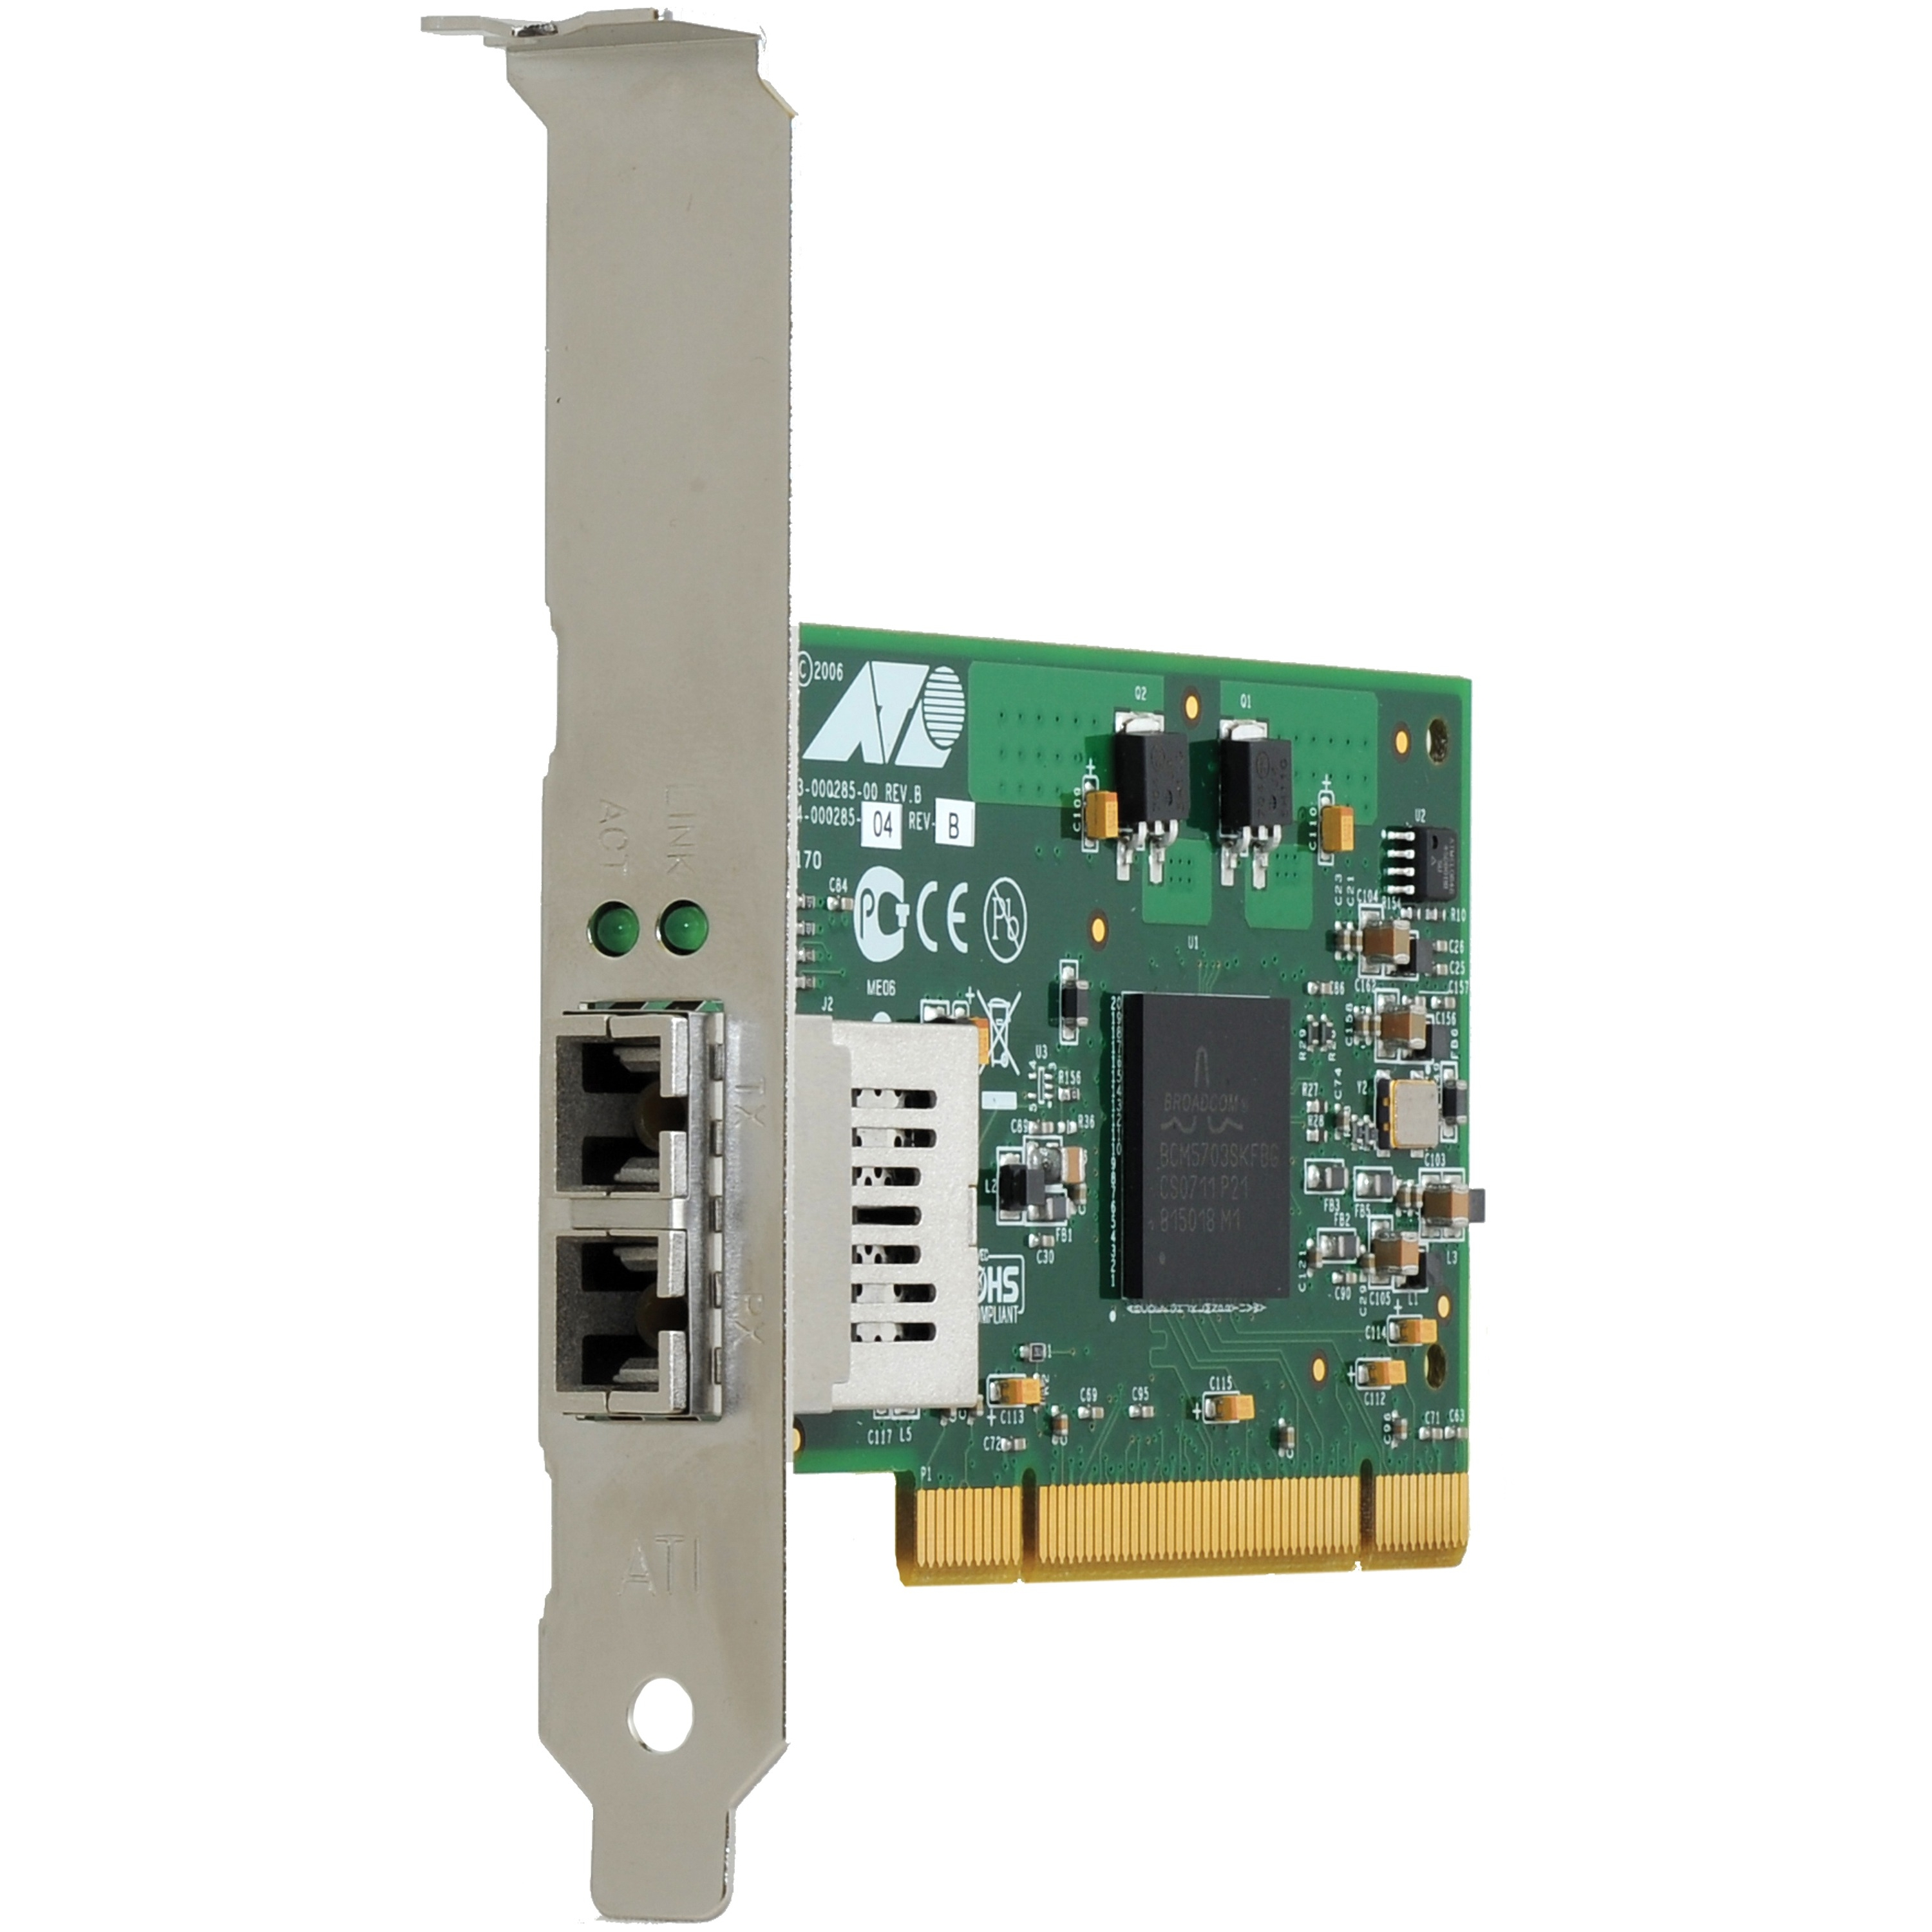 Allied Telesis At-2916sx Fiber Network Interface Card - Pci - 1 X Lc - 1000base-sx (at2916sx/lc901)